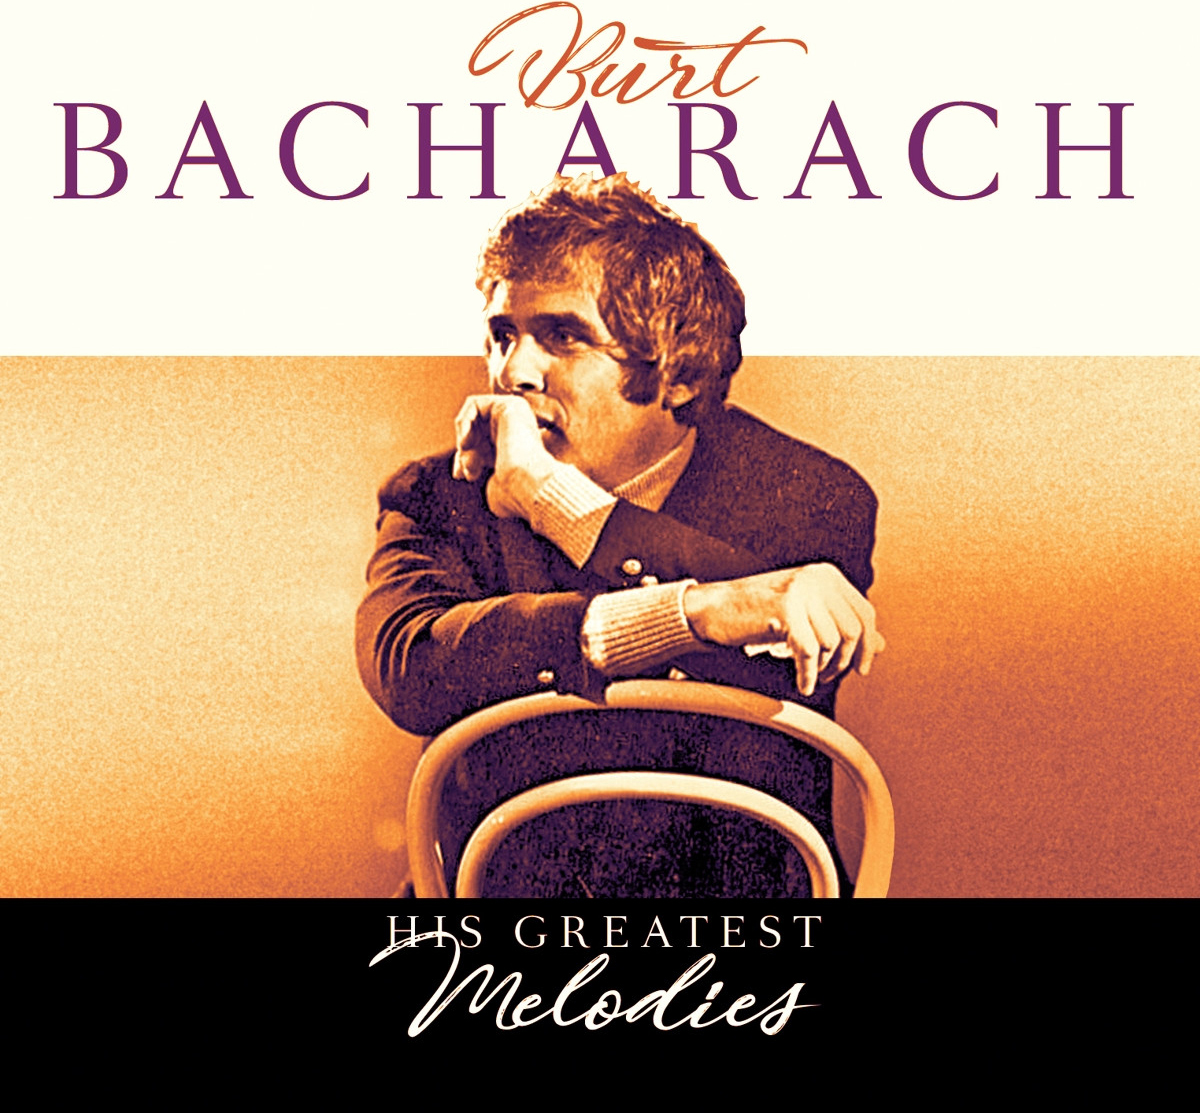 Берт Бахарах Burt Bacharach. His Greatest Melodies (2 CD) klassik the greatest melodies